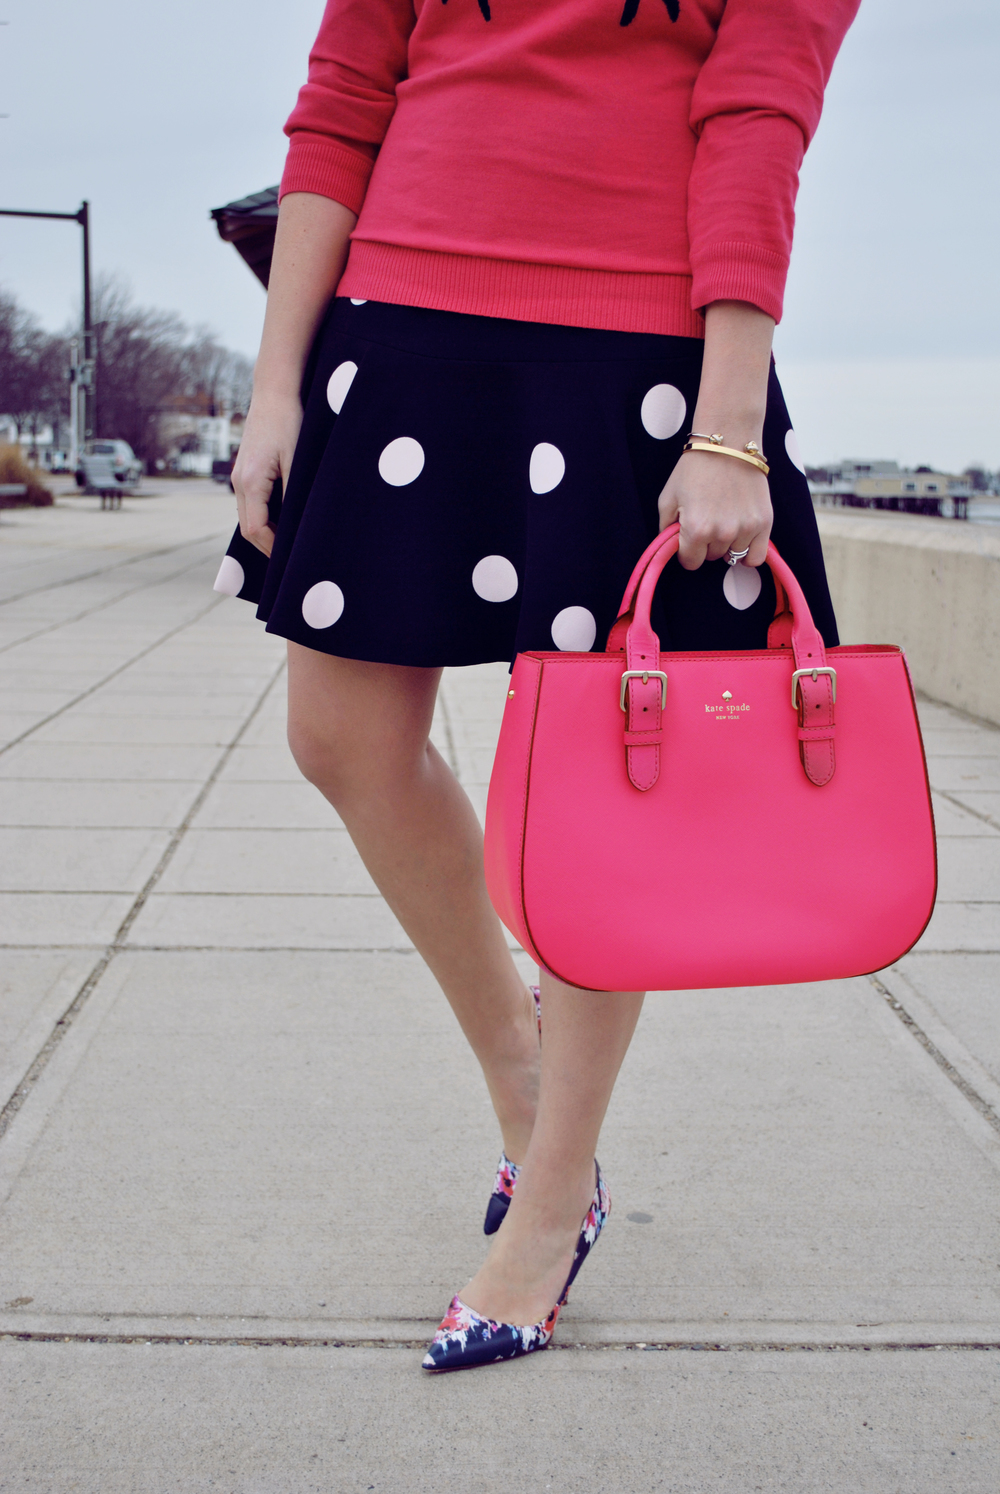 thoughtfulwish | meredith wish boston // talbots // crab sweater // polka dots // preppy outfit // spring outfit // cape style // kate spade